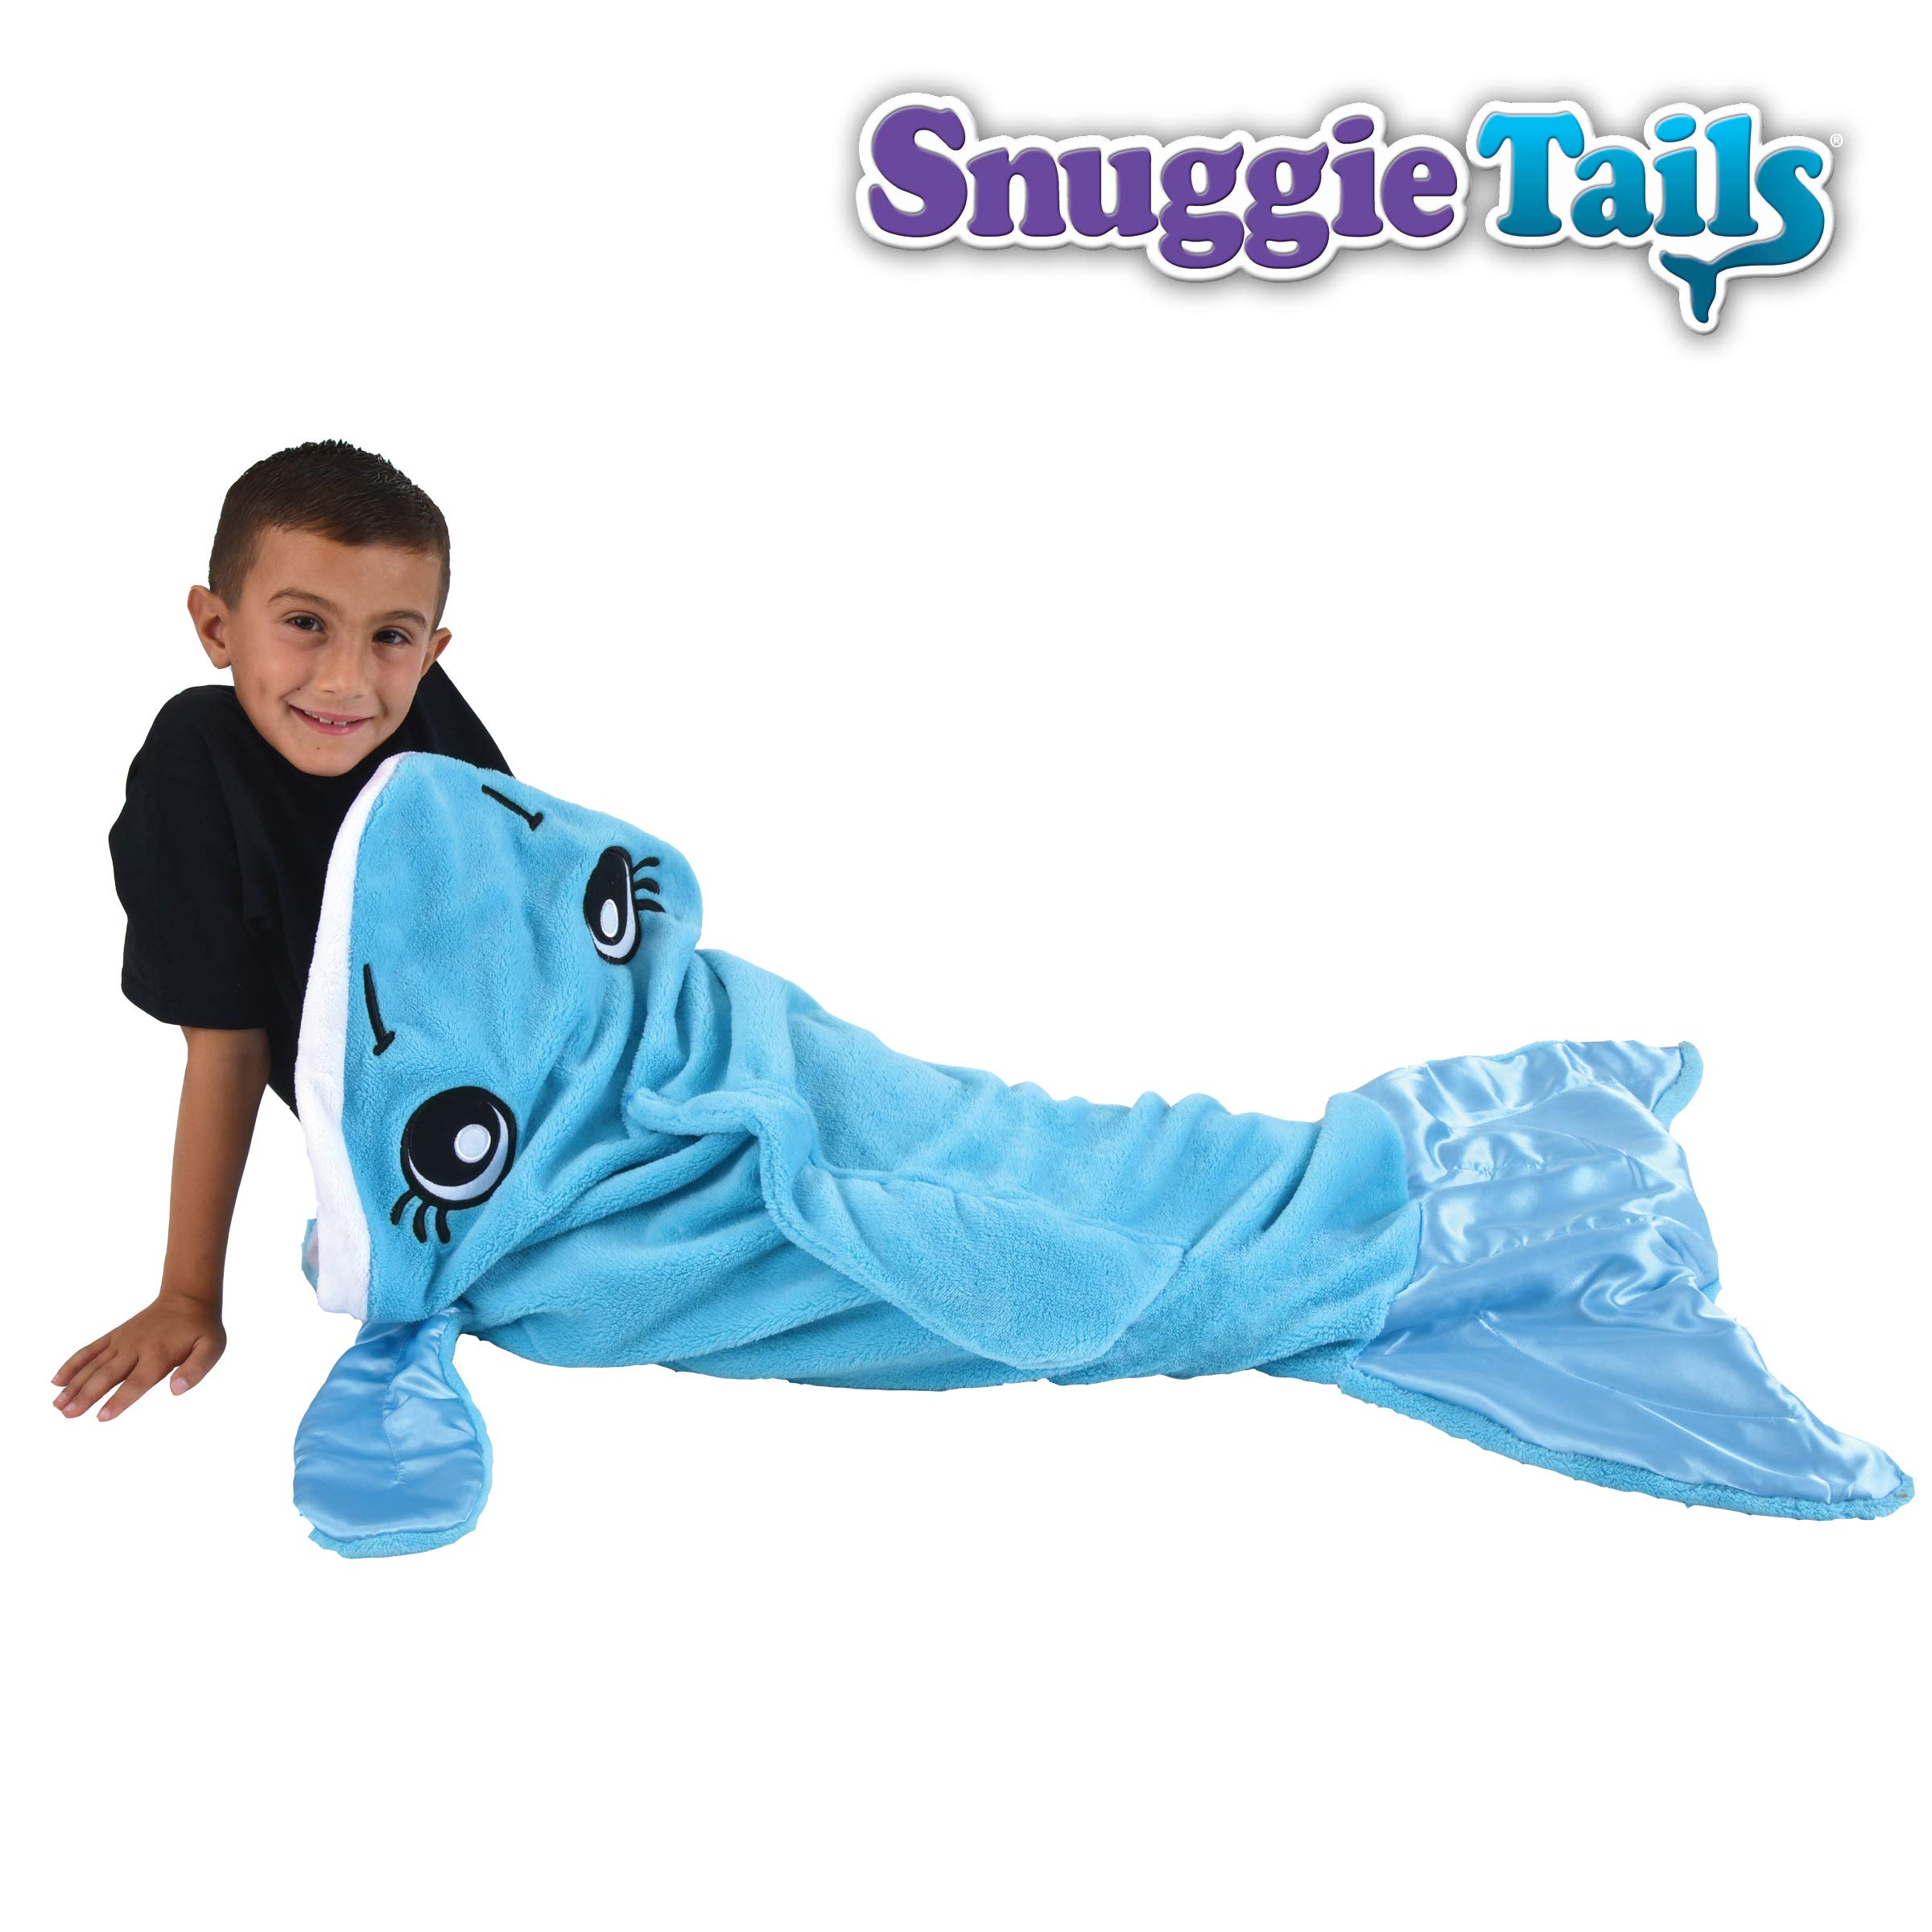 Snuggie Tails Dolphin- Tails Comfy Cozy Super Soft Blanket for Kids, As Seen on TV